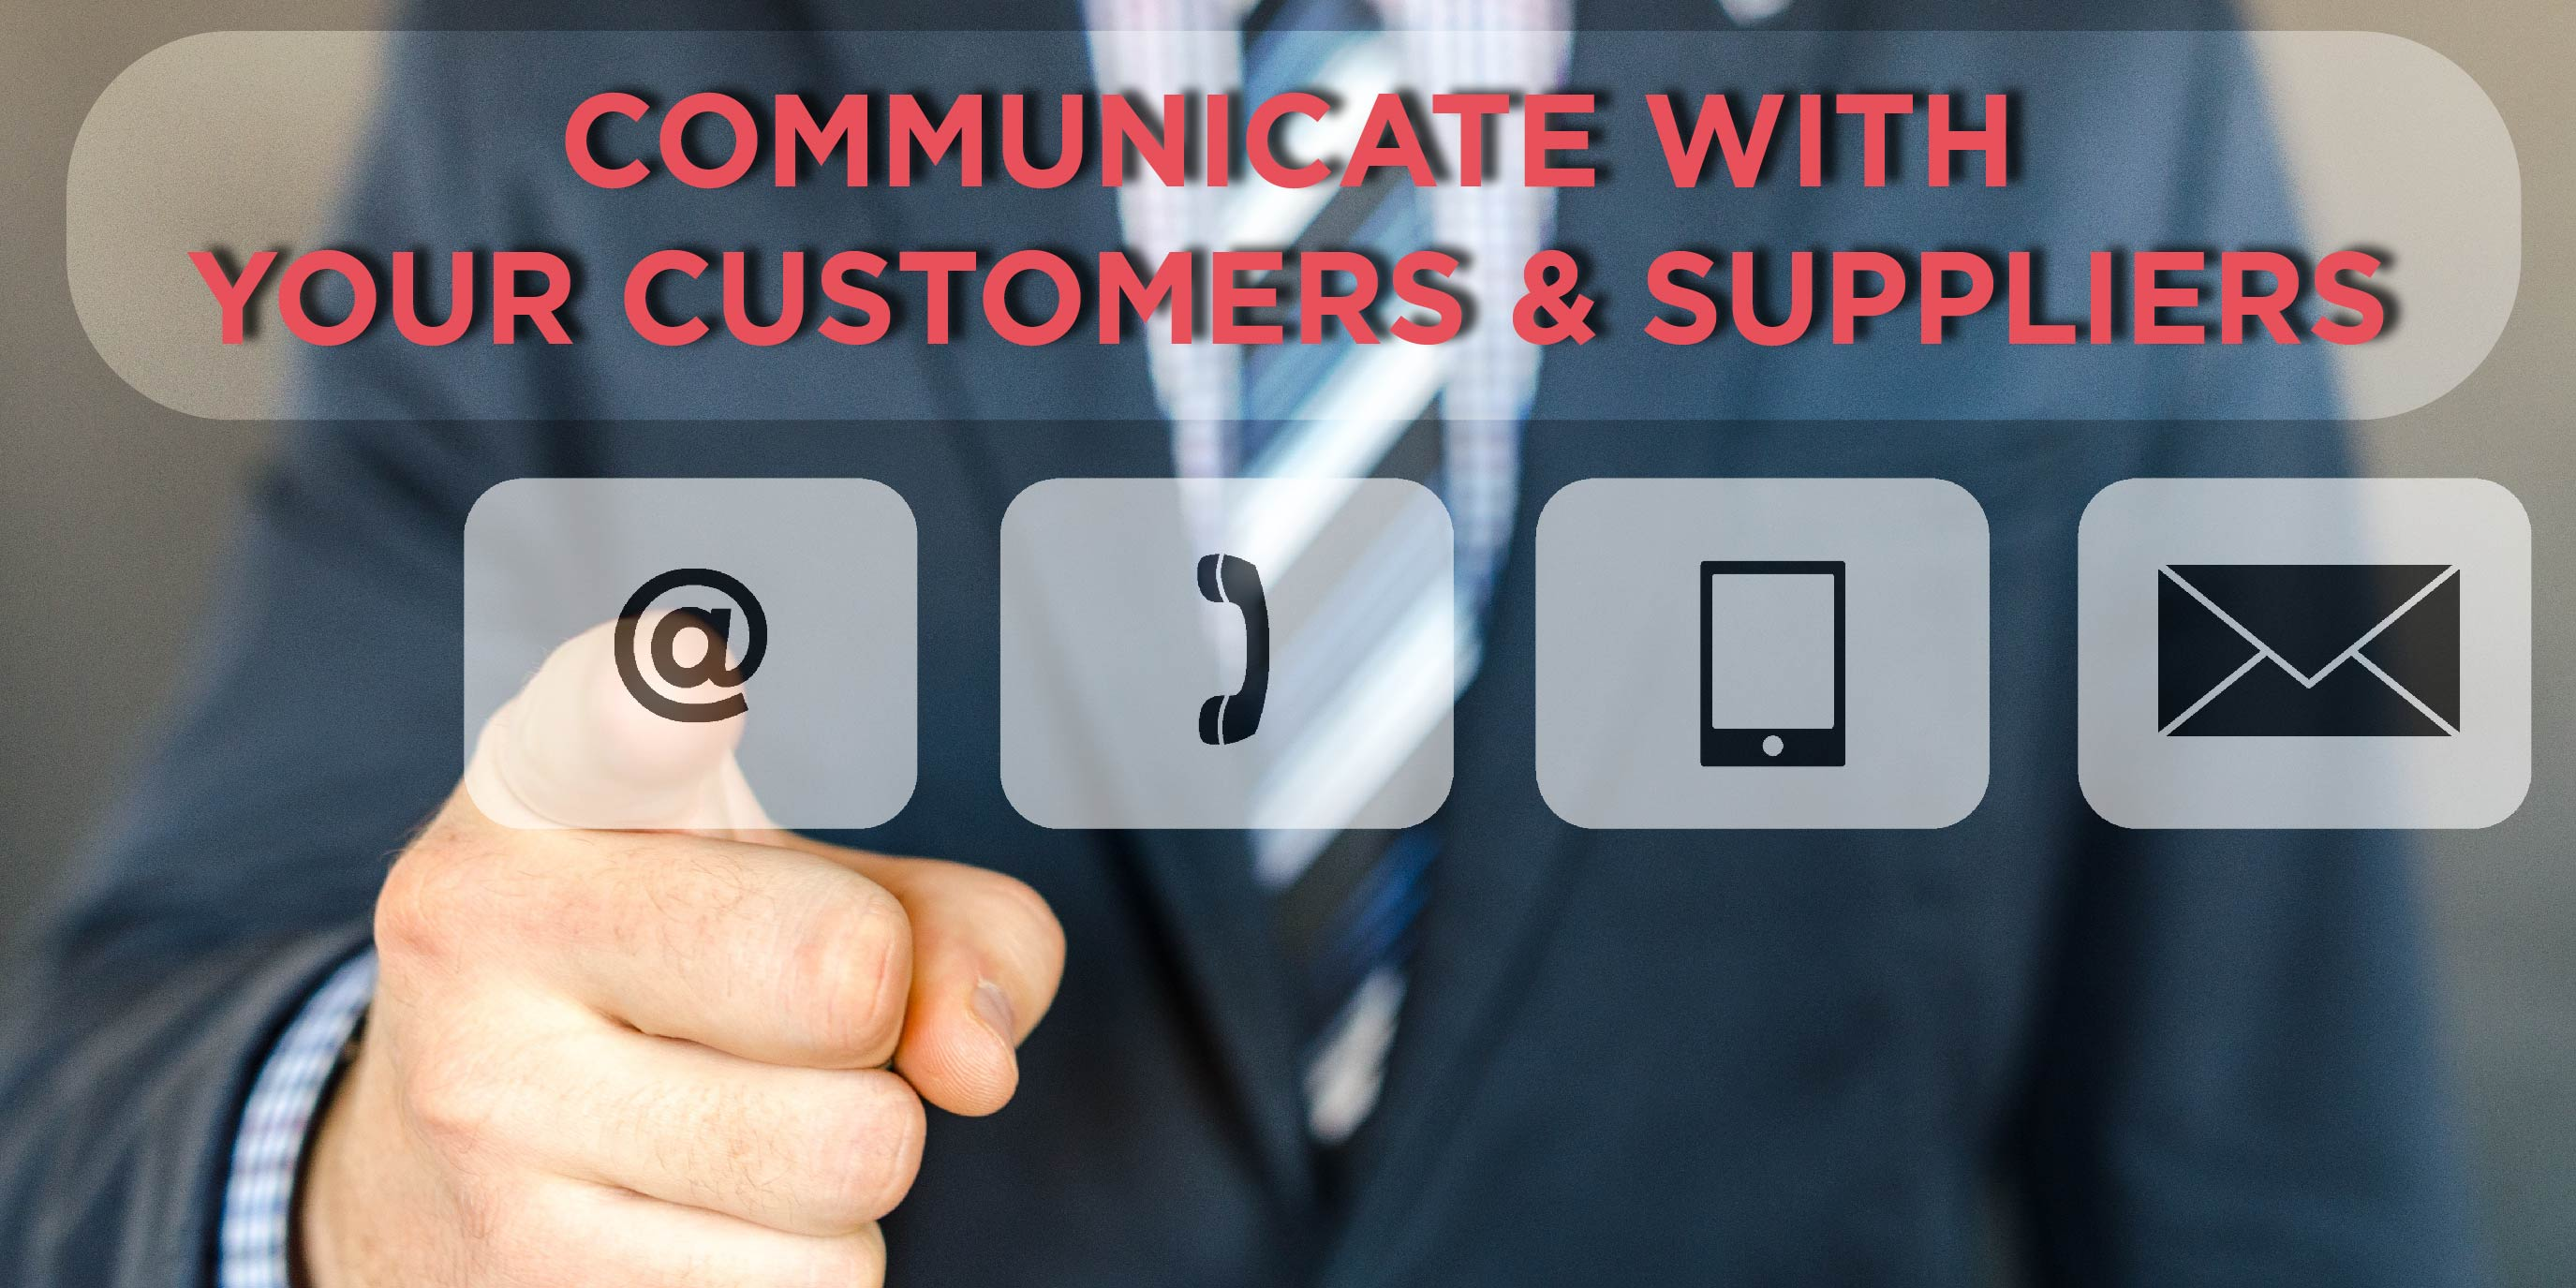 Communicate with Your Customers Suppliers 01